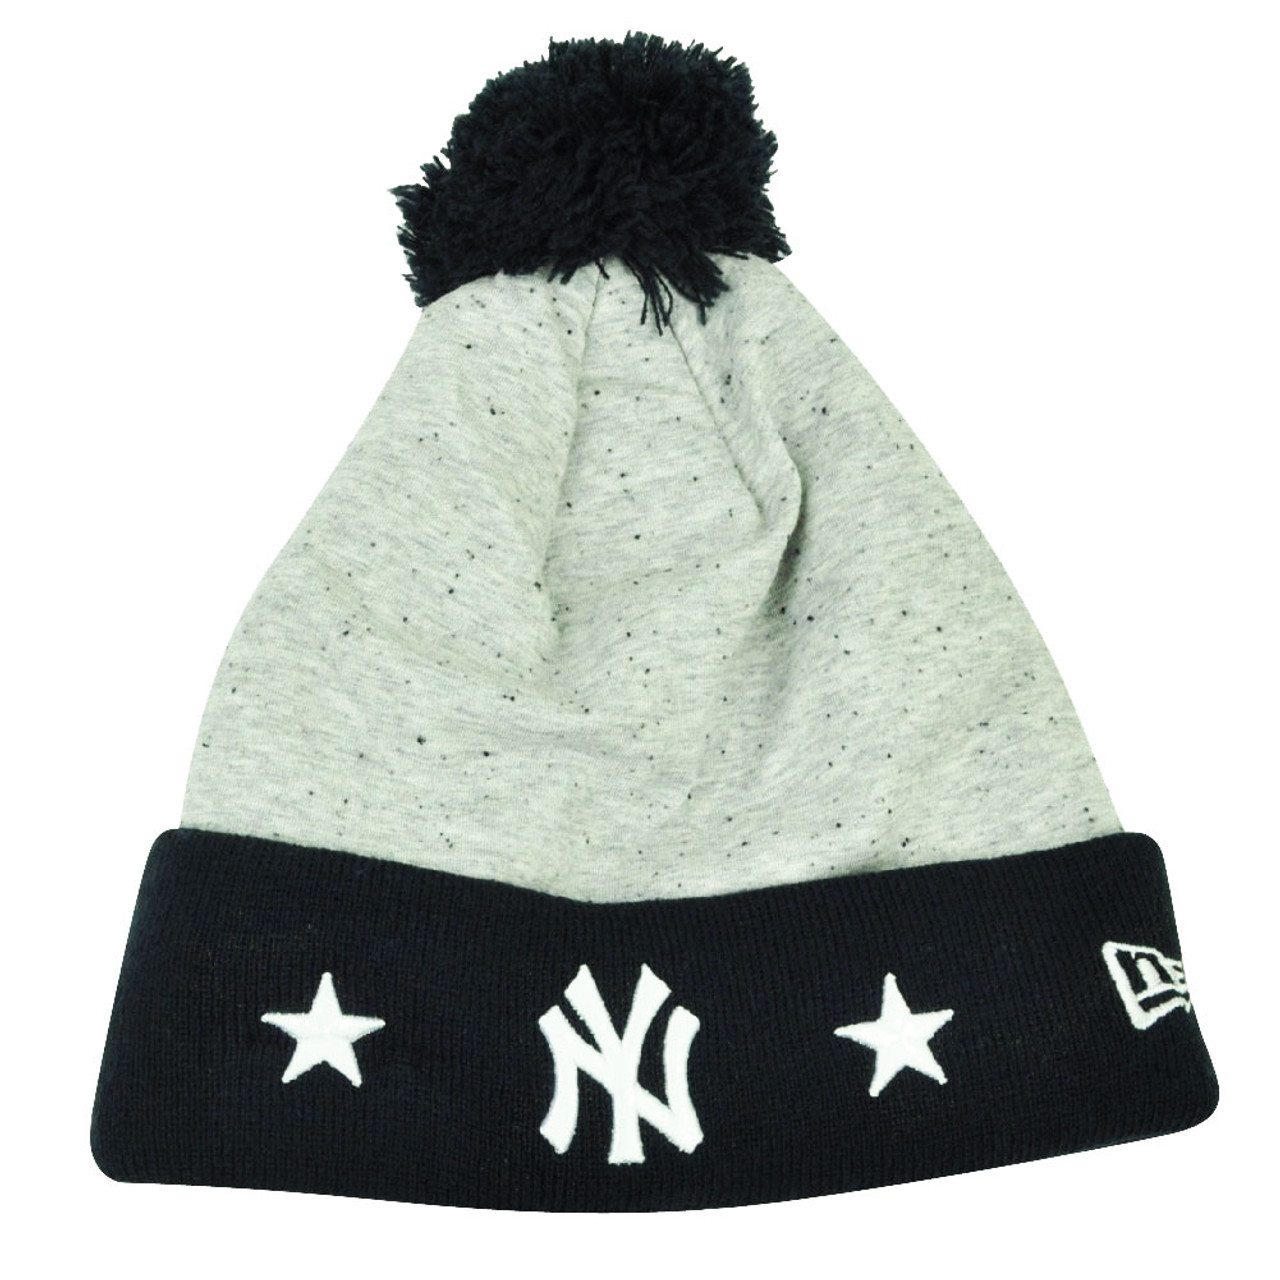 0762c508cd98ca MLB New Era Heather Spec New York Yankees Cuffed Knit Beanie Pom Pom Toque  Grey - Cap Store Online.com